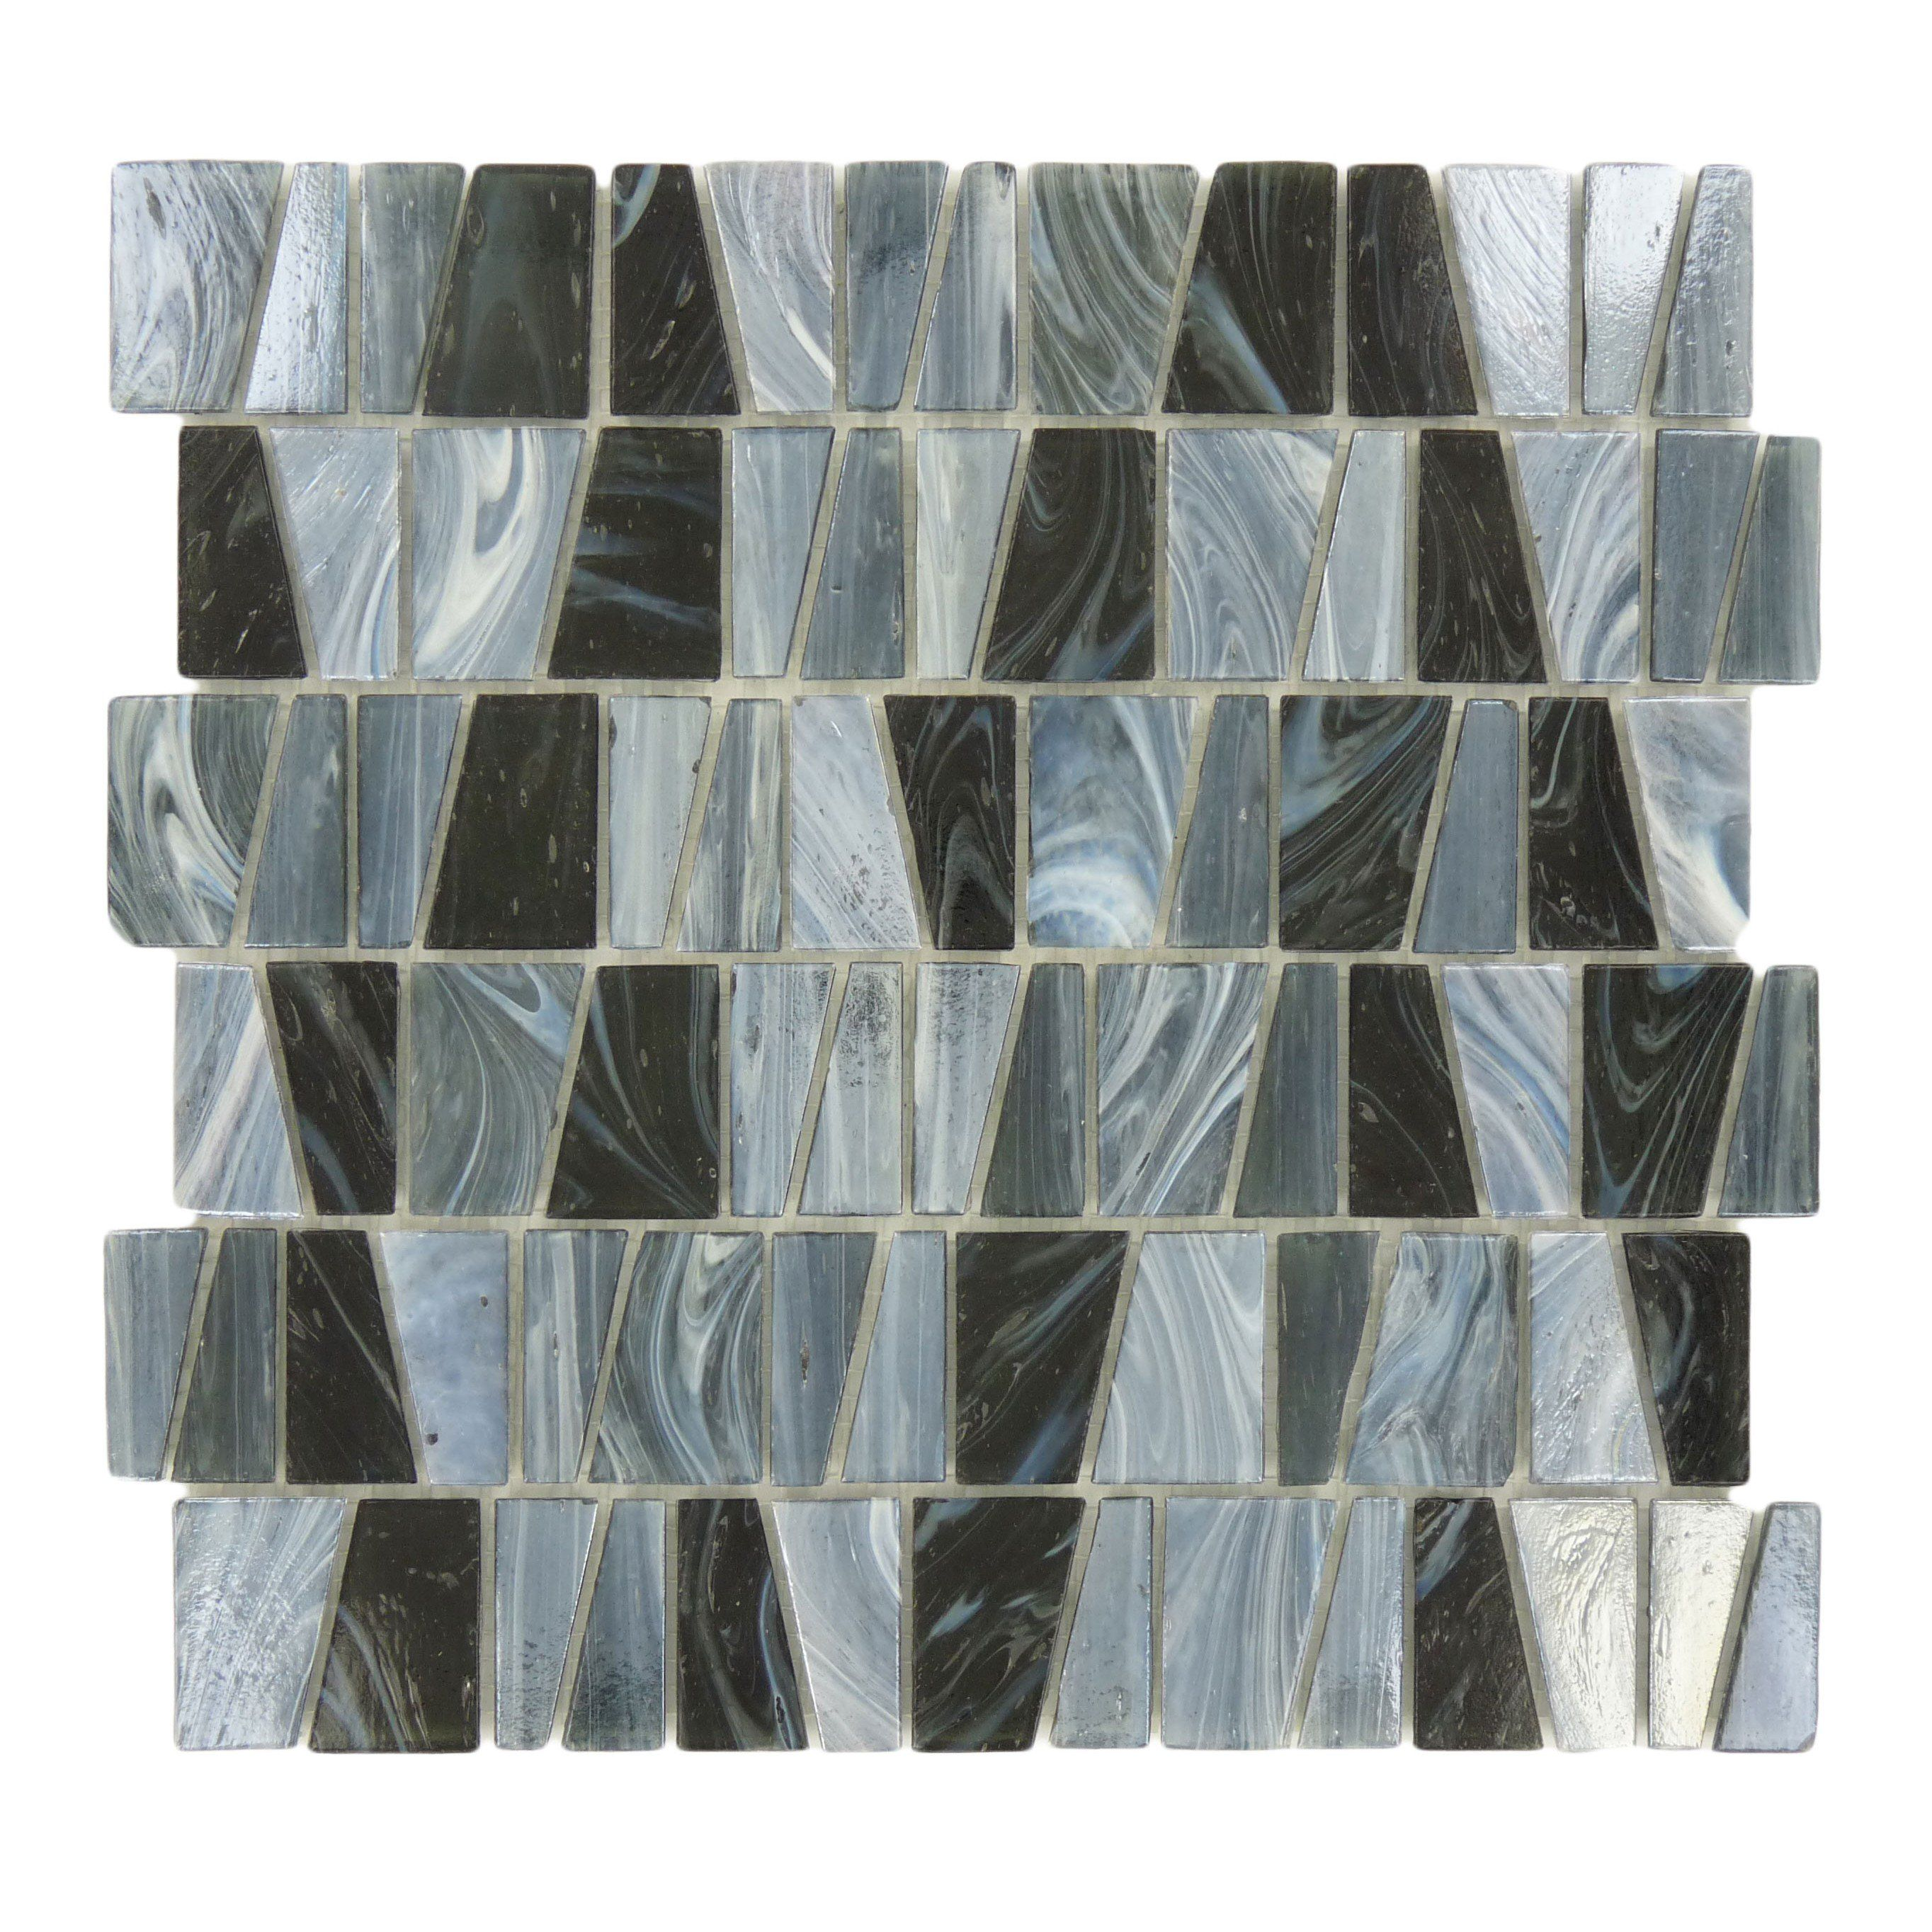 Sheet Size 12 3 8 X 11 3 4 Tile Size Variable Tile Thickness 3 16 Nominal Grout Joints 1 8 Sheet Mou Grey Glass Tiles Grey Glass Grey Stain